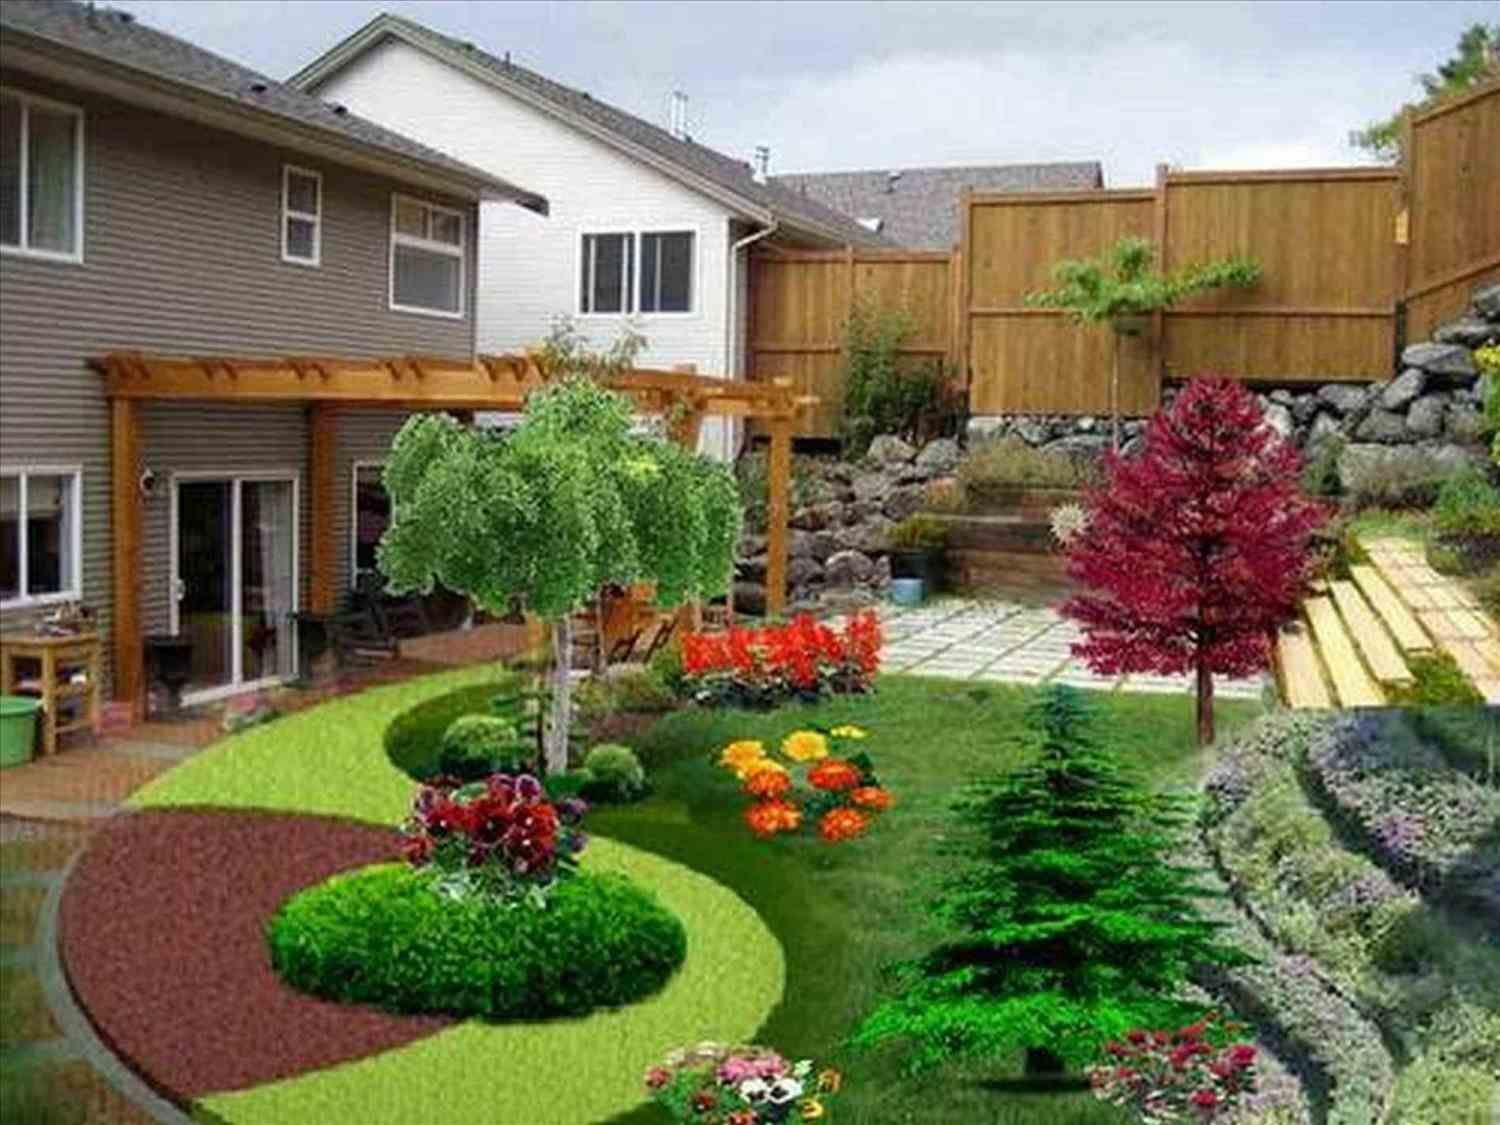 Garden Ideas Driveway Landscape Front Yard Landscaping With Design And Decor Gravel Edging Entrance How To Lay Stone Chippings Rock